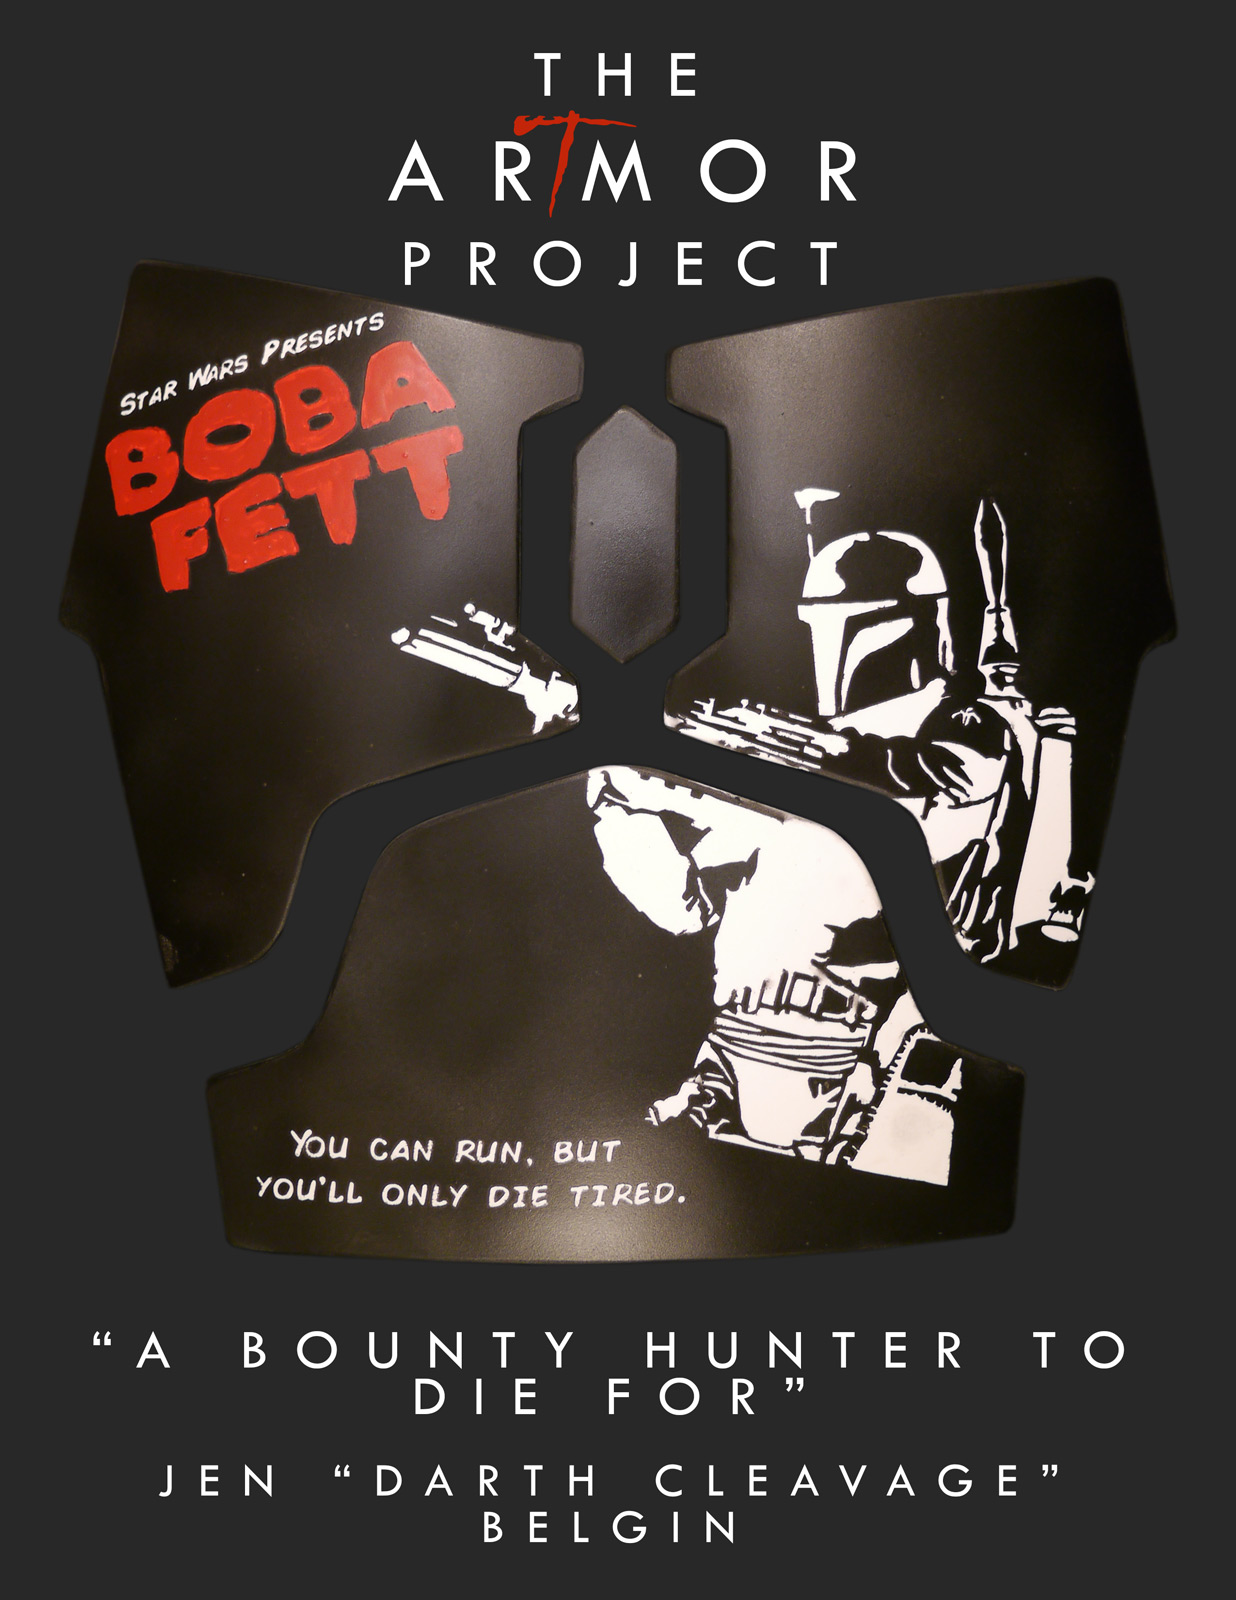 ArTmor 2015: A Bounty Hunter To Die For